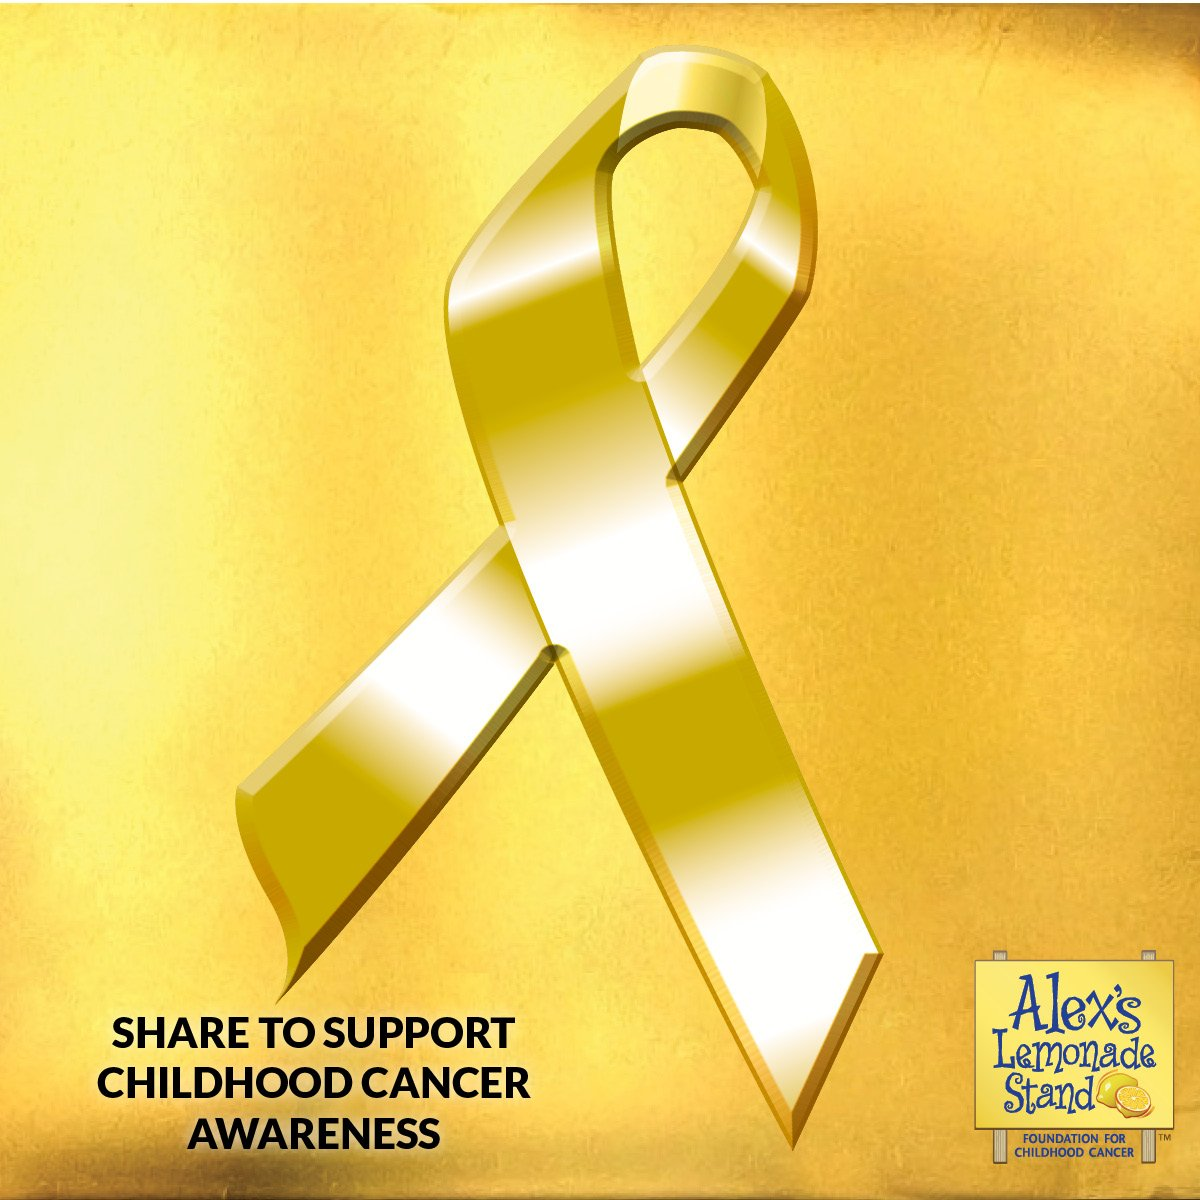 Help us spread awareness this September, Childhood Cancer Awareness Month, by sharing this image. #childhoodcancer https://t.co/yMspavVBwg